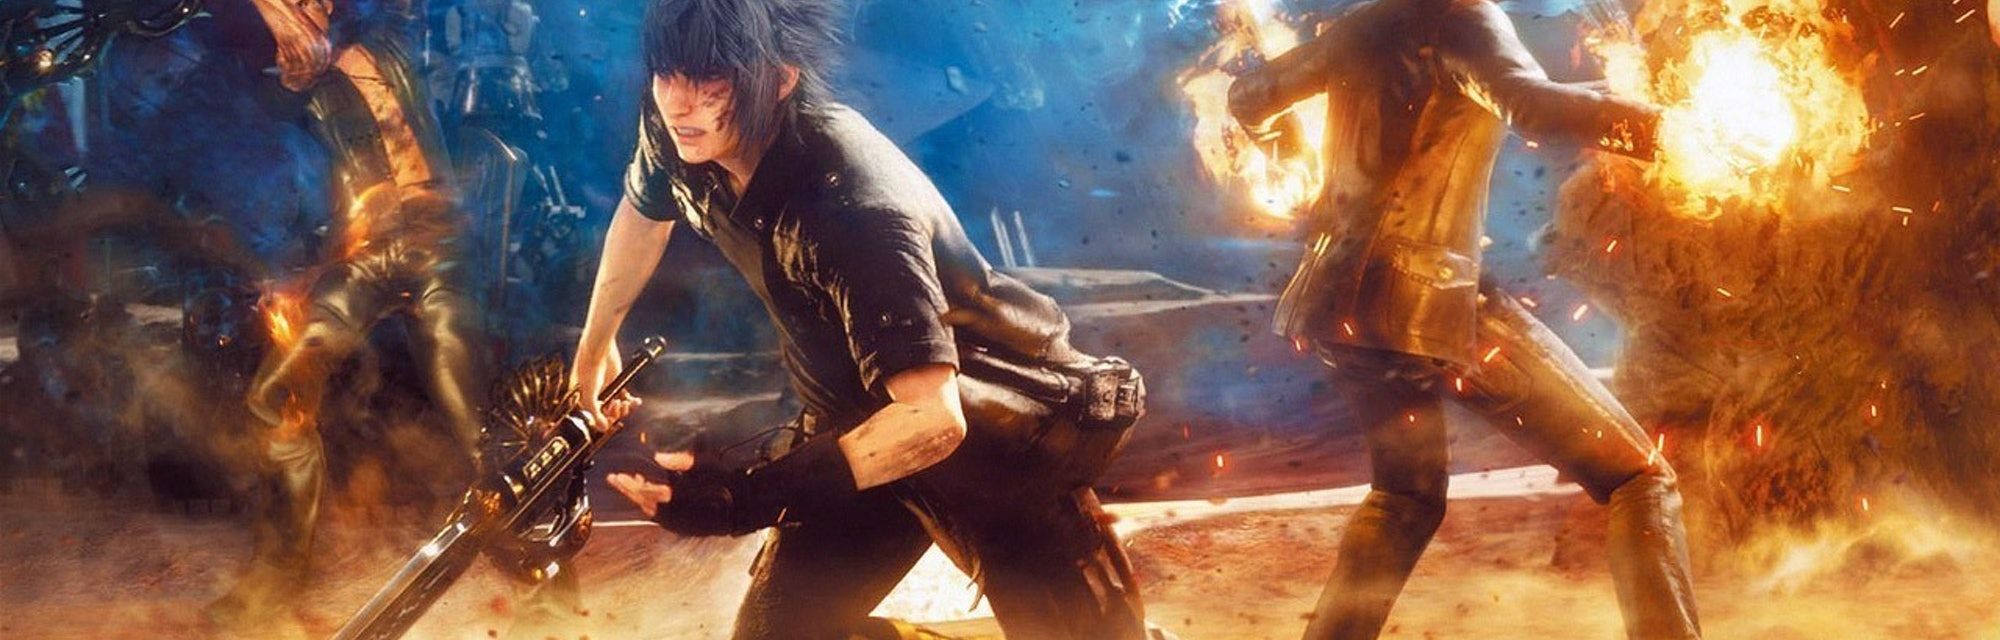 Everything You Need To Prep For The Final Fantasy Xv Launch